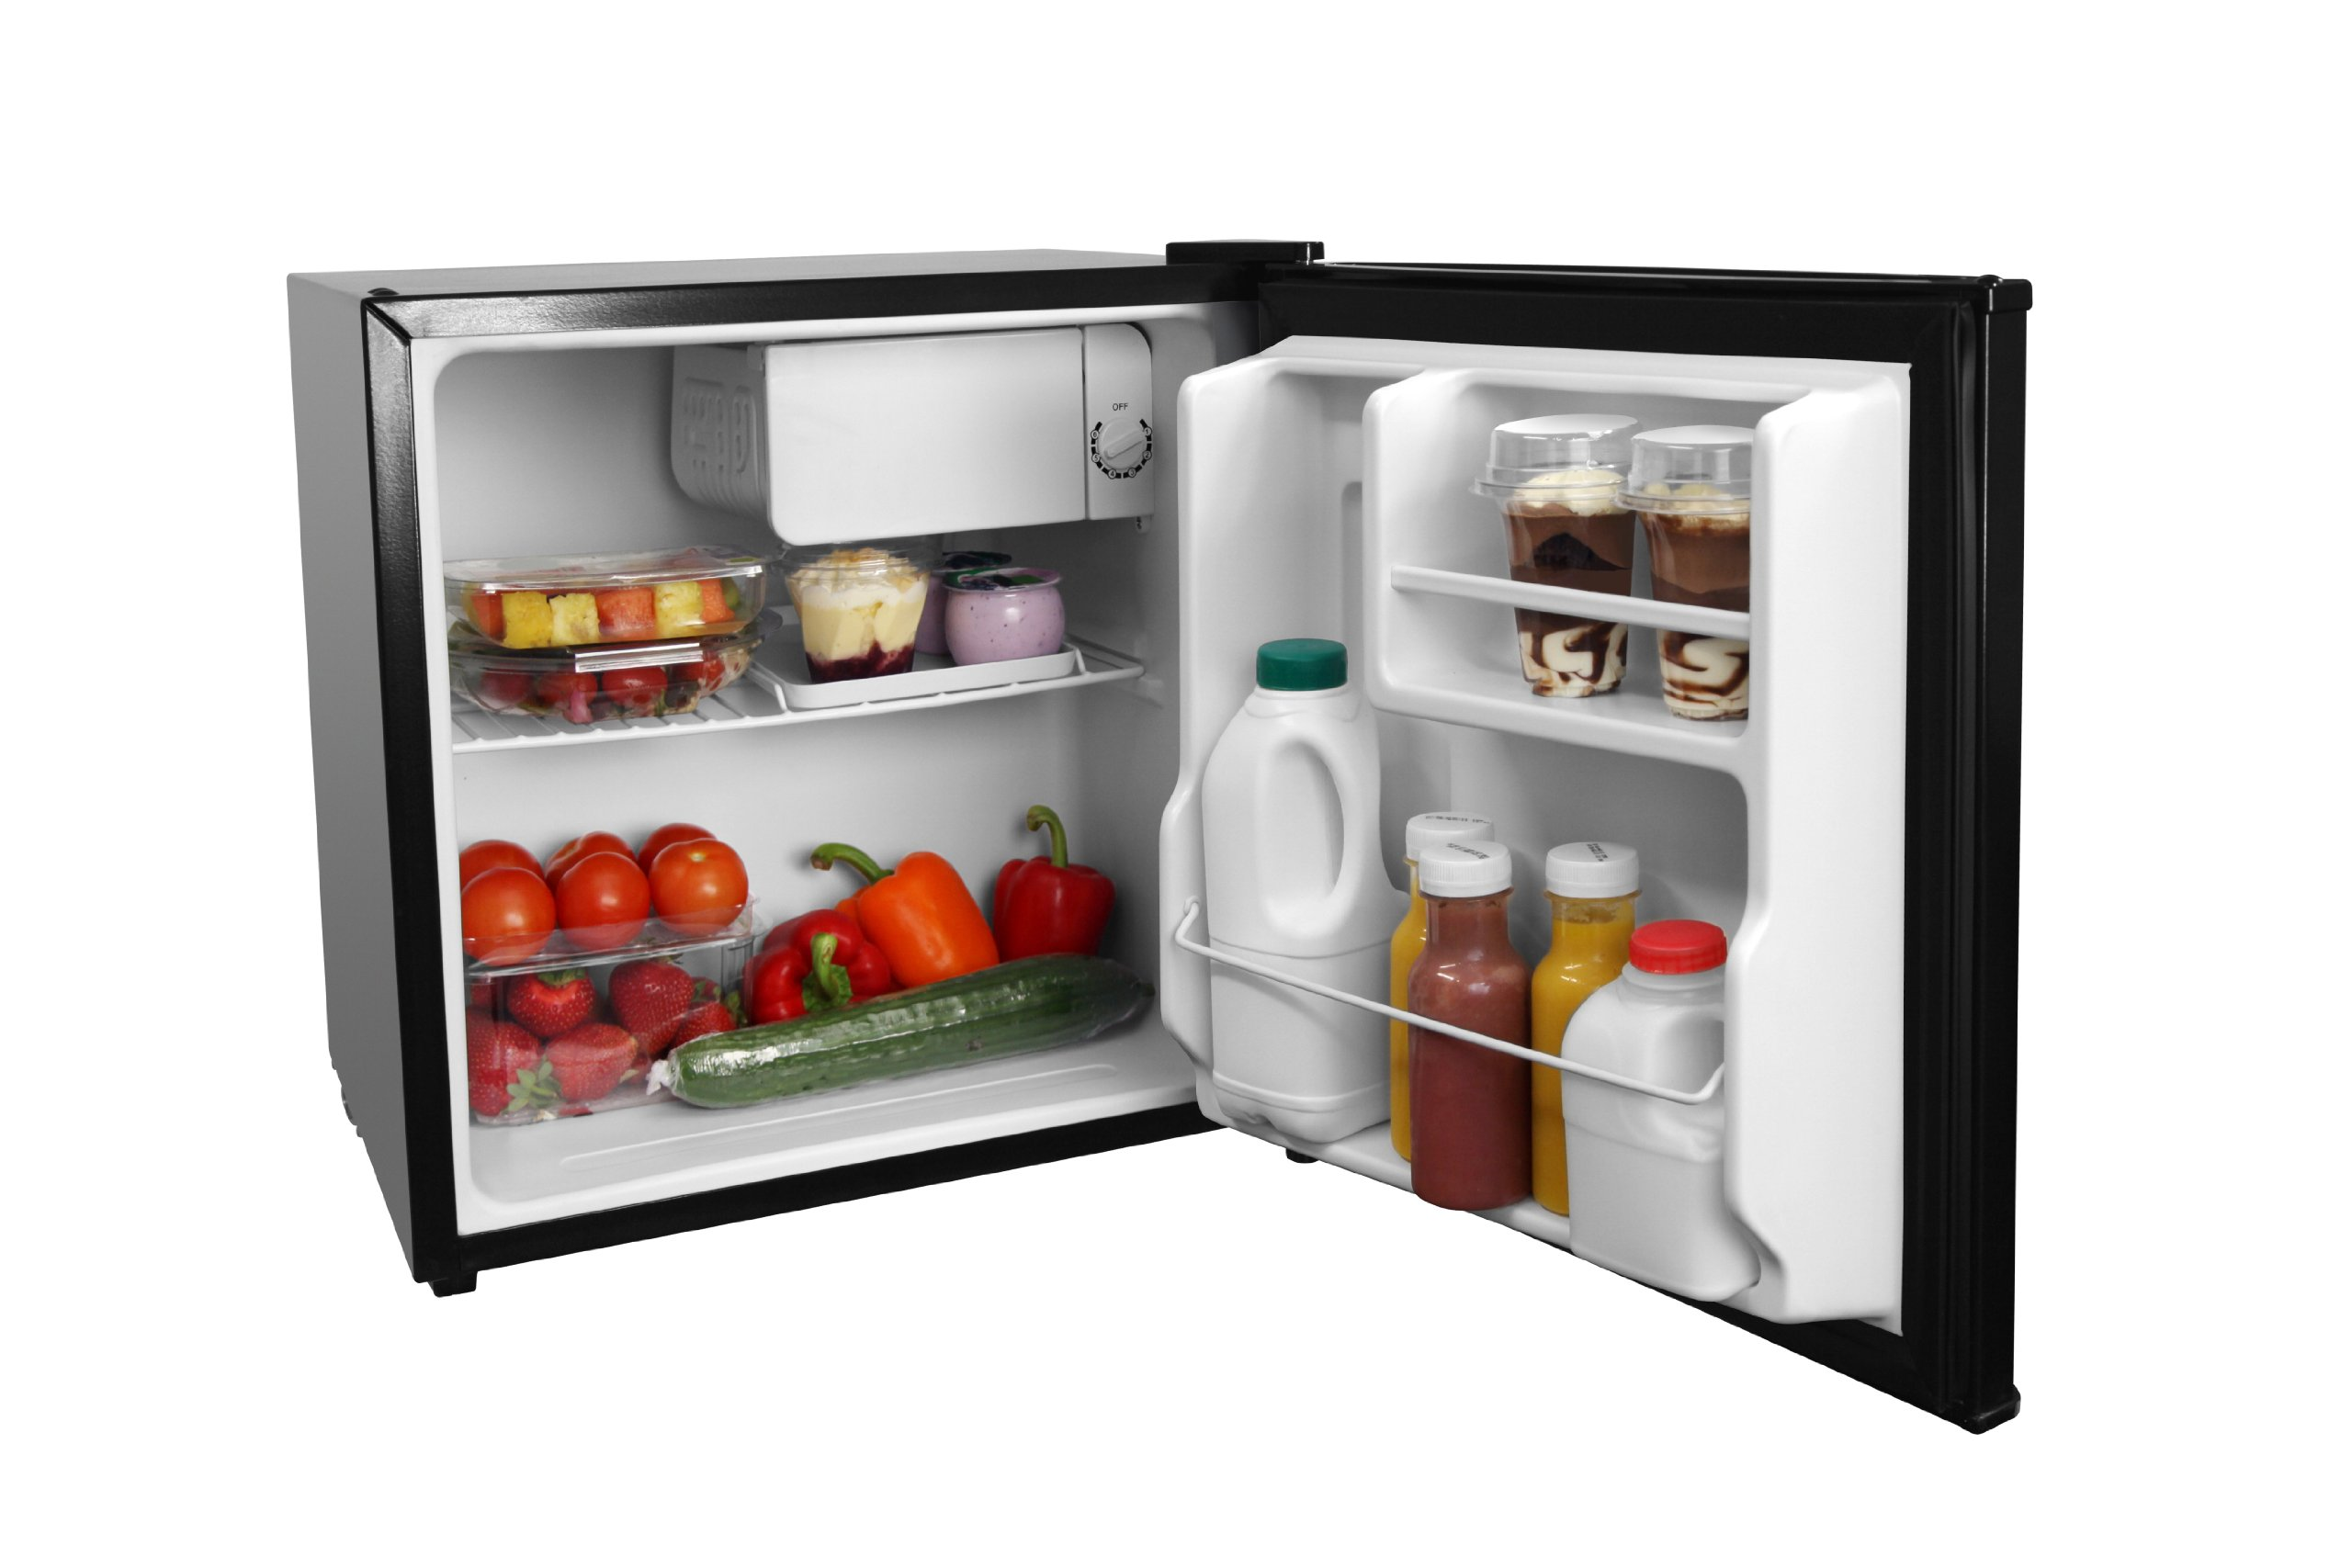 71JIDAL786L - Russell Hobbs RHTTLF1B 43L Table Top A+ Energy Rating Fridge Black